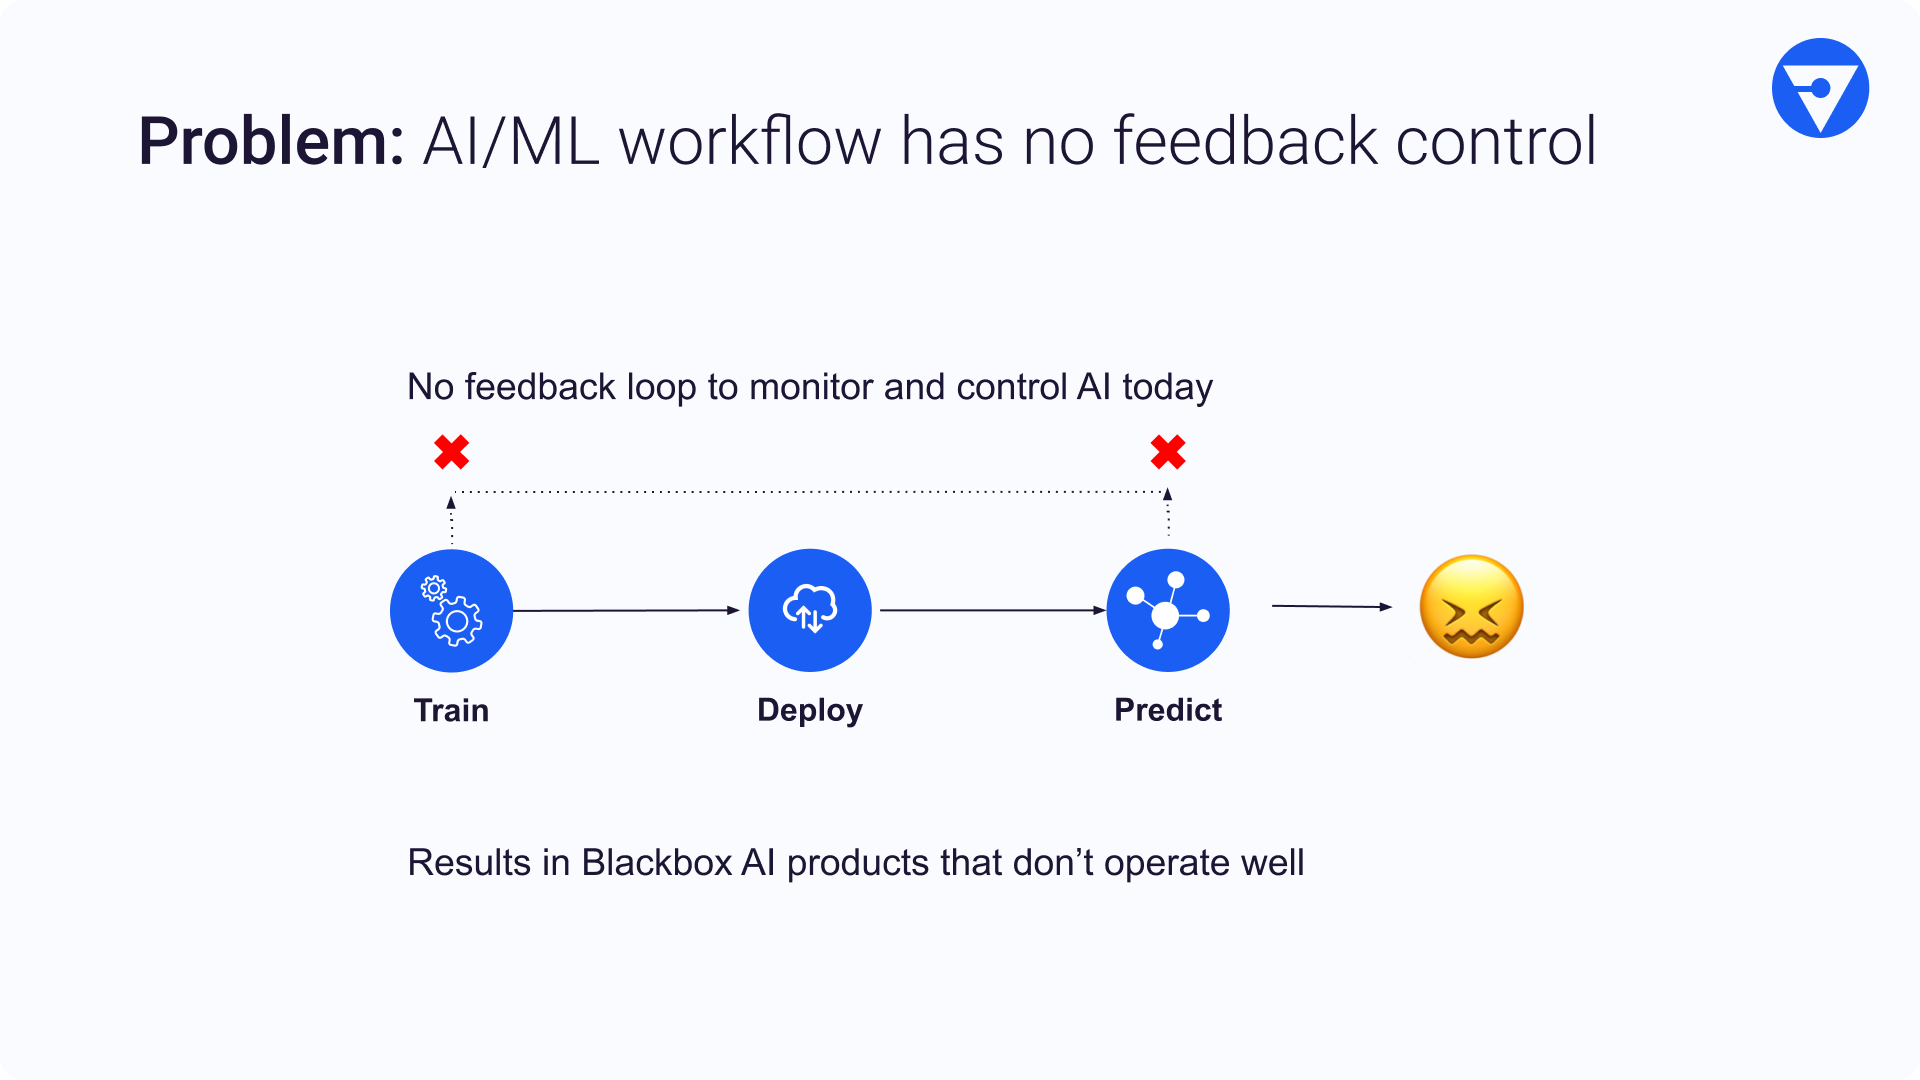 What's wrong with the current AI/ML workflow? There is no feedback loop to monitor and control AI. As a result, the black box AI products do not operate efficiently.